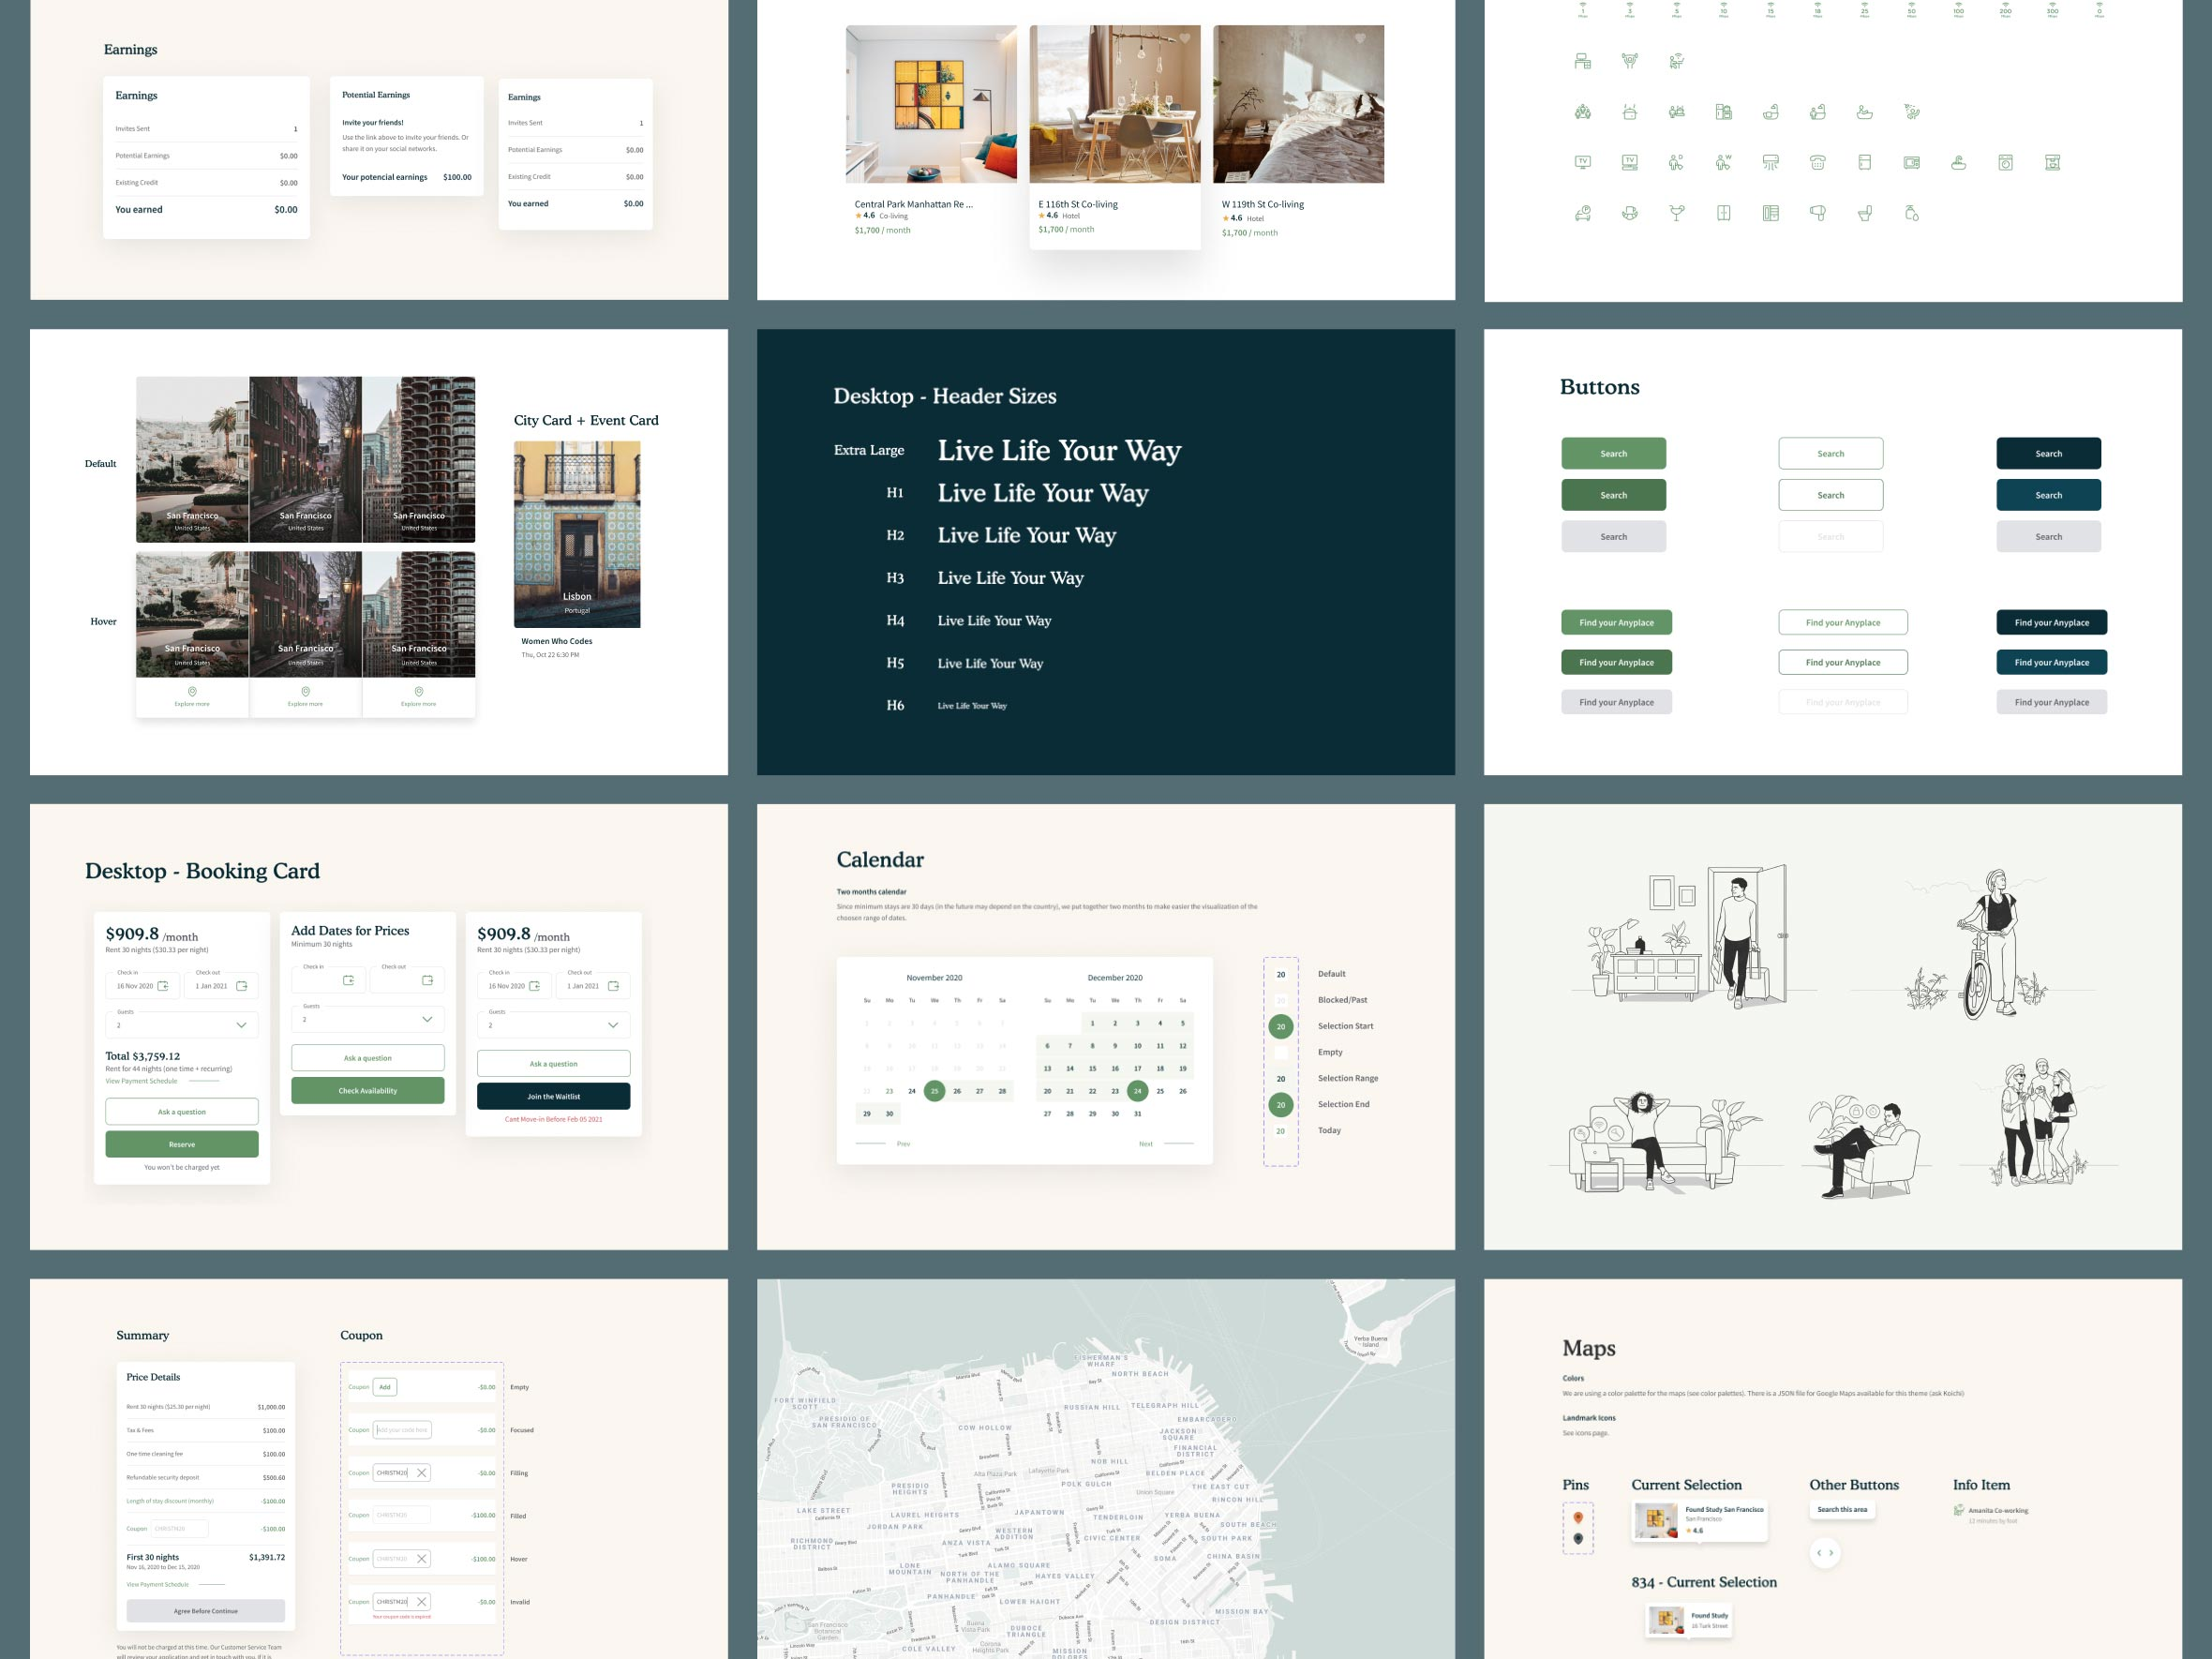 style guide and components of Anyplace designed by Zypsy